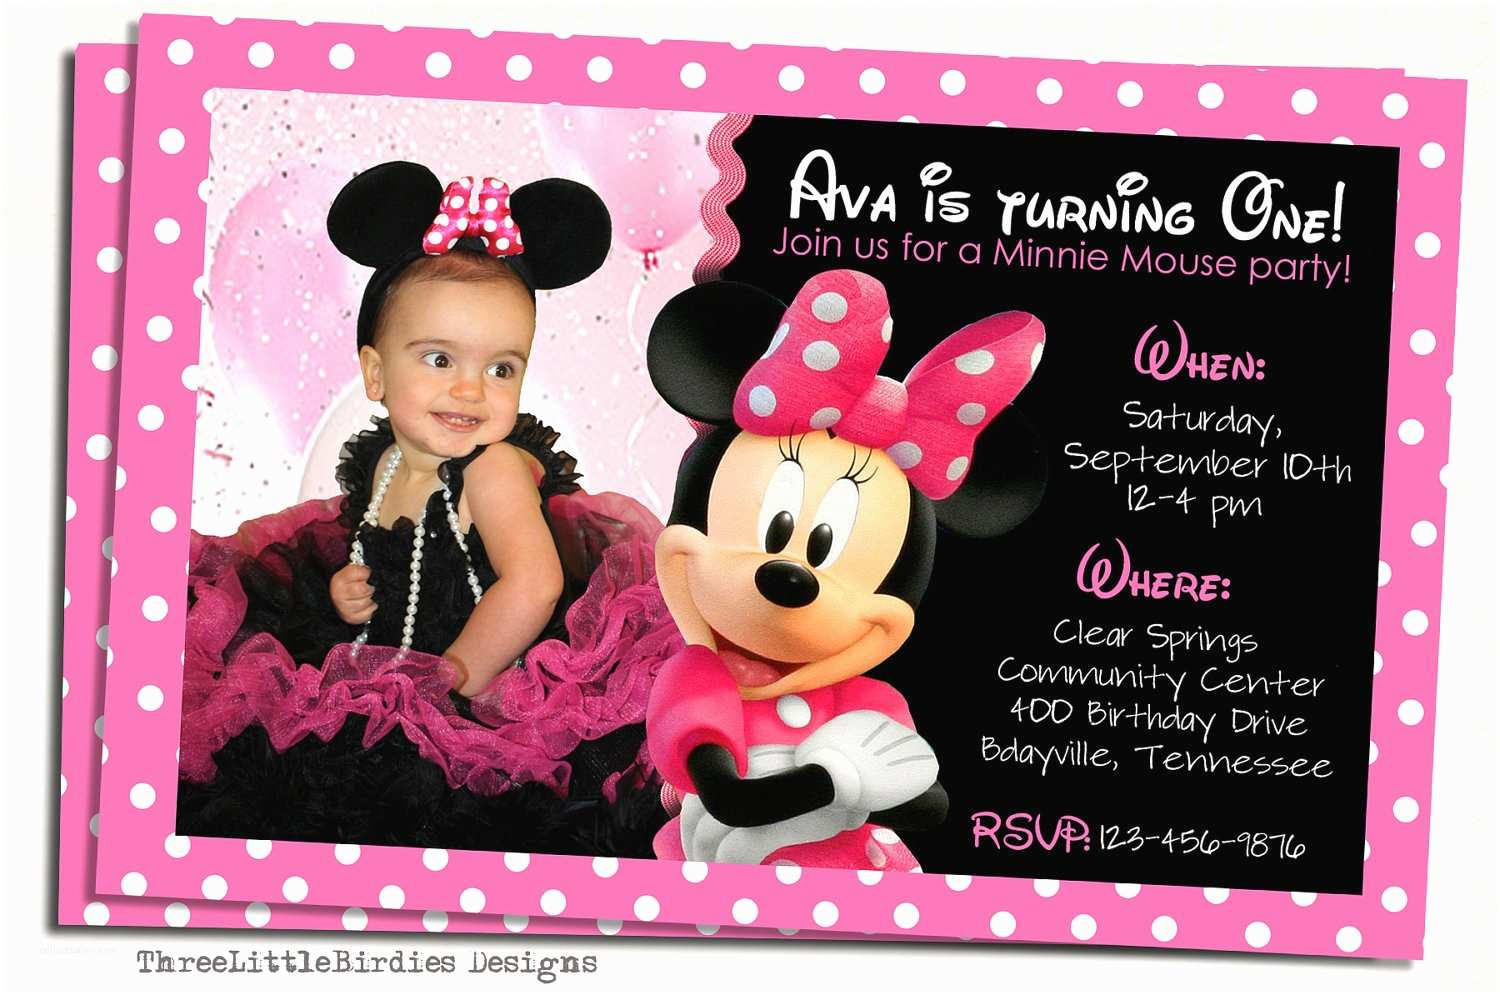 Minnie Mouse Birthday Invitations Personalized Minnie Mouse Birthday Invitations Personalized